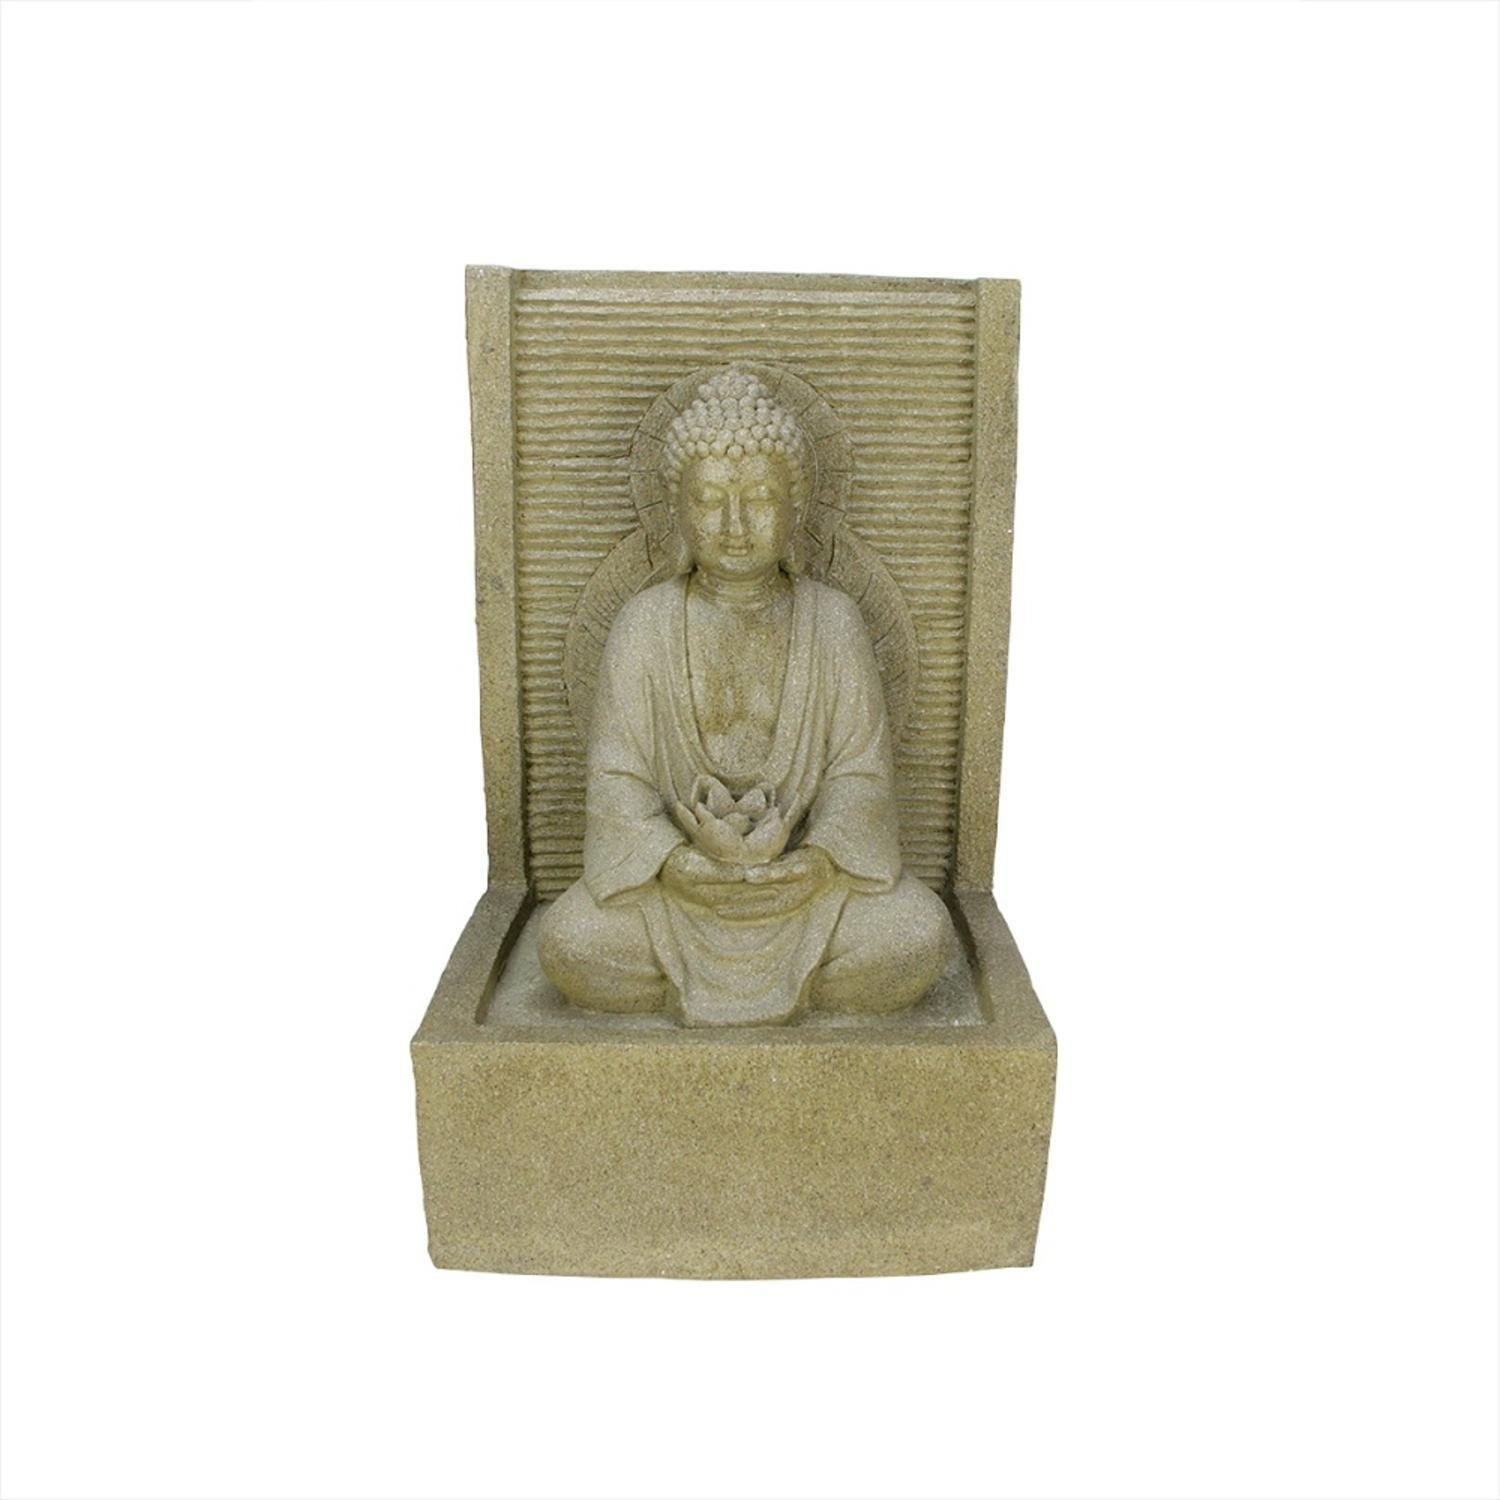 Northlight LED Lighted Praying Buddha Water Fountain Outdoor Patio Garden Statue, 23''